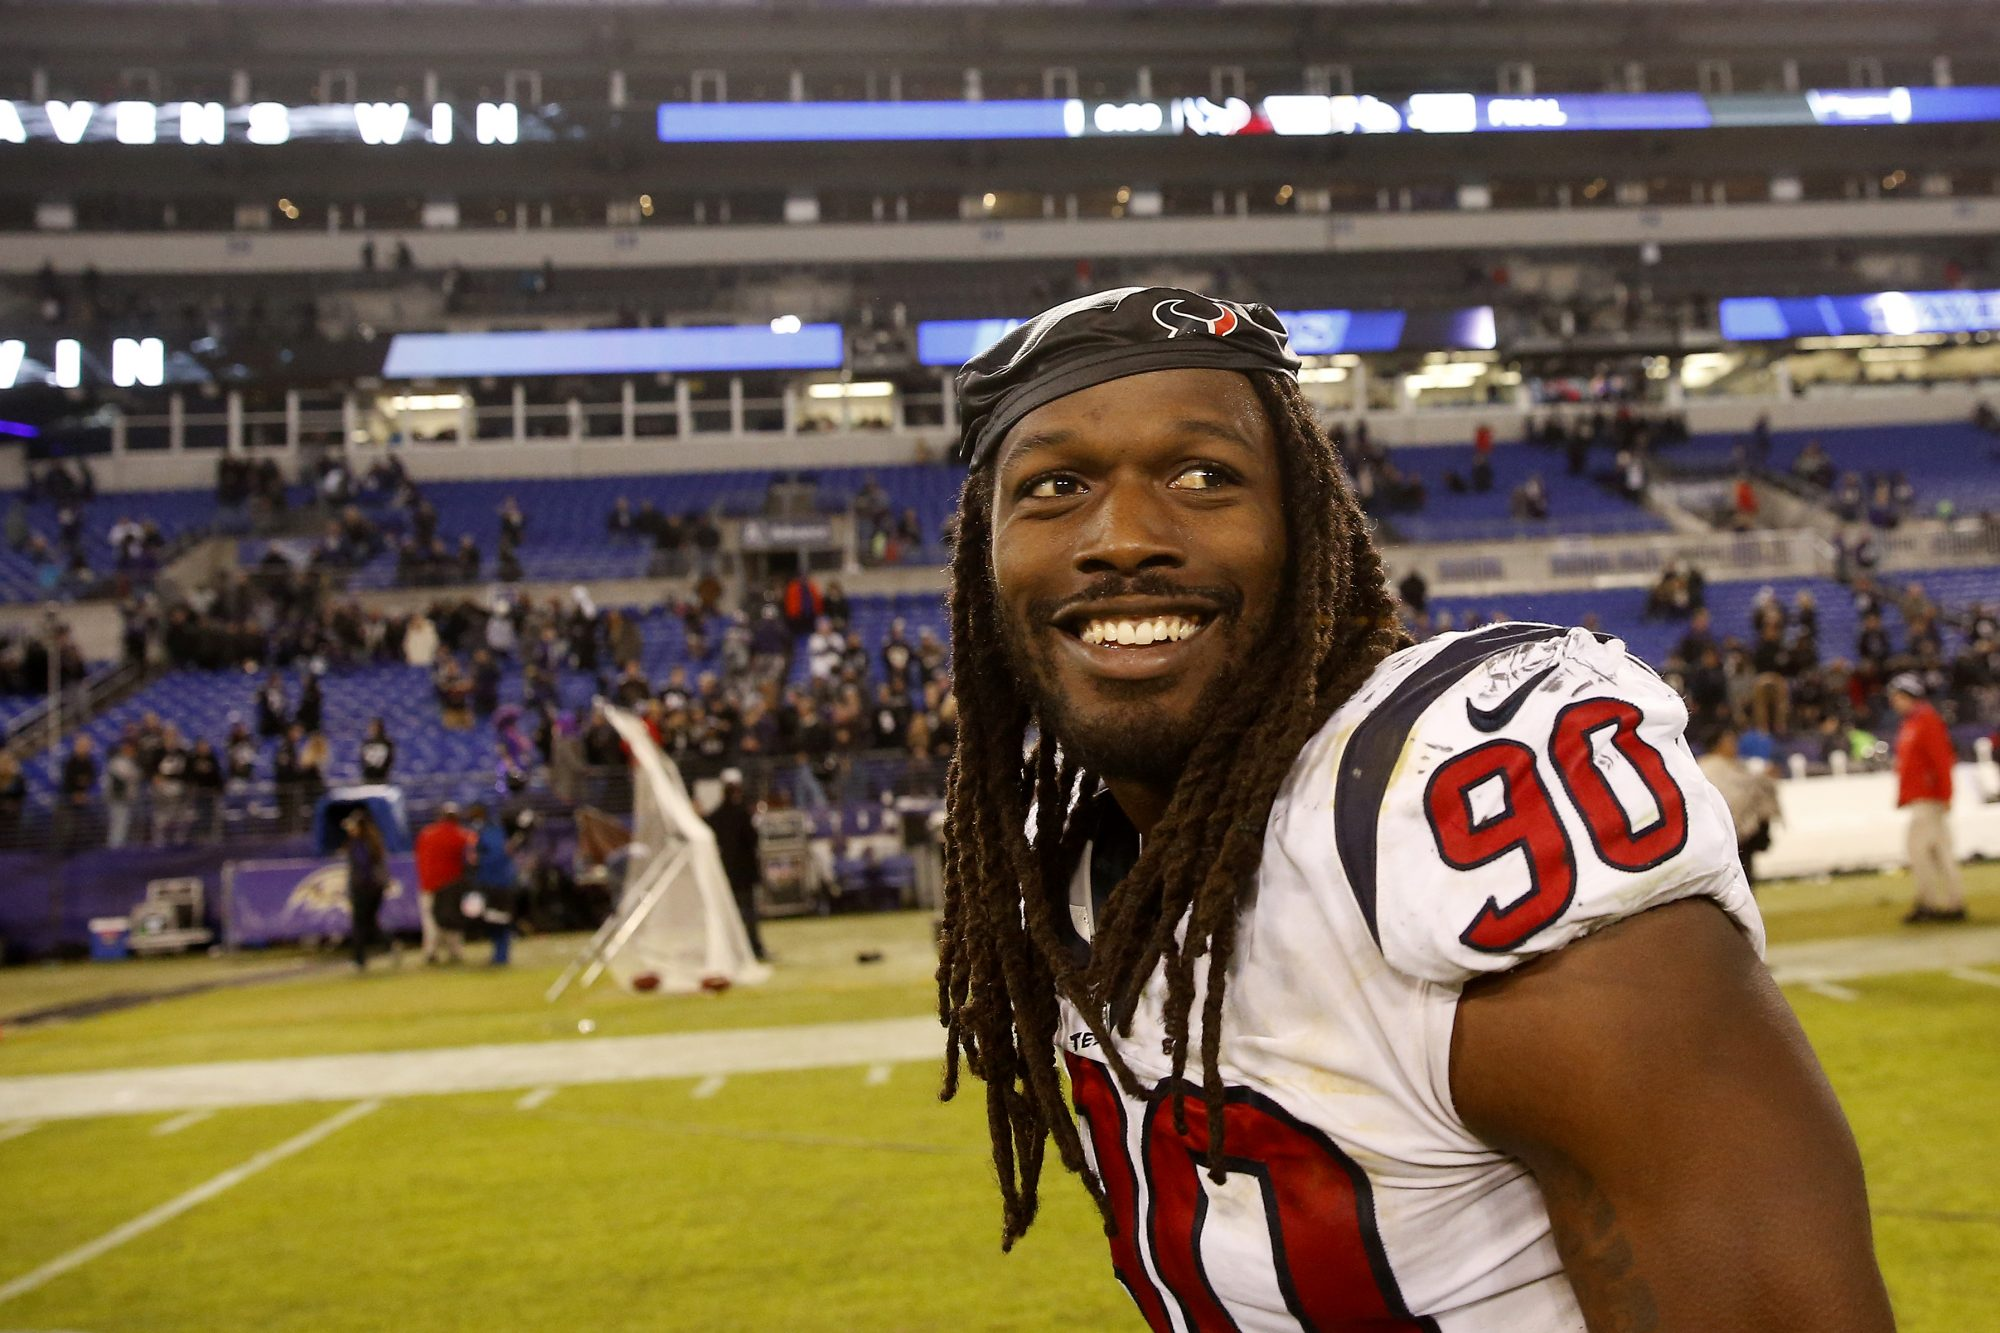 Houston Texan Jadeveon Clowney